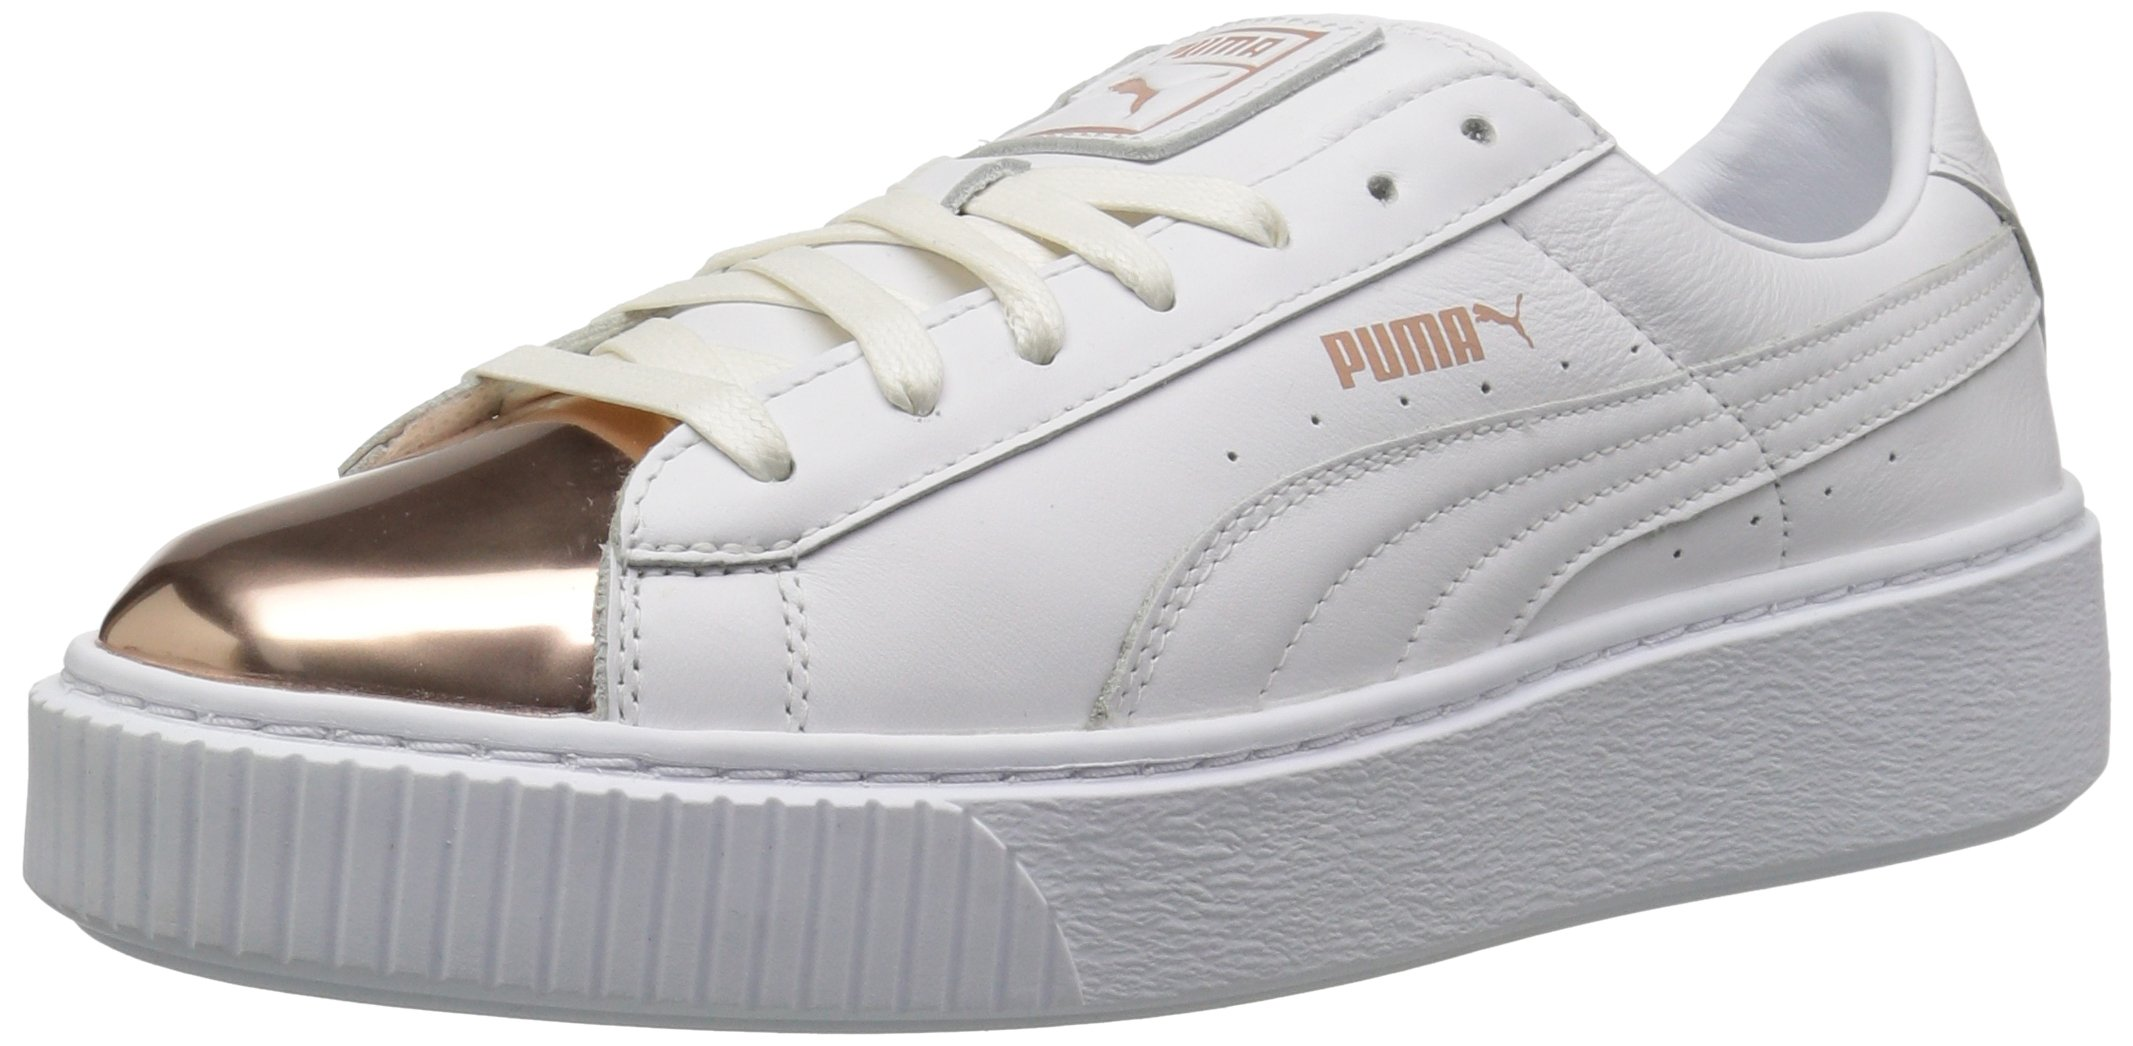 PUMA 彪马 Basket Platform Metallic 女士厚底板鞋